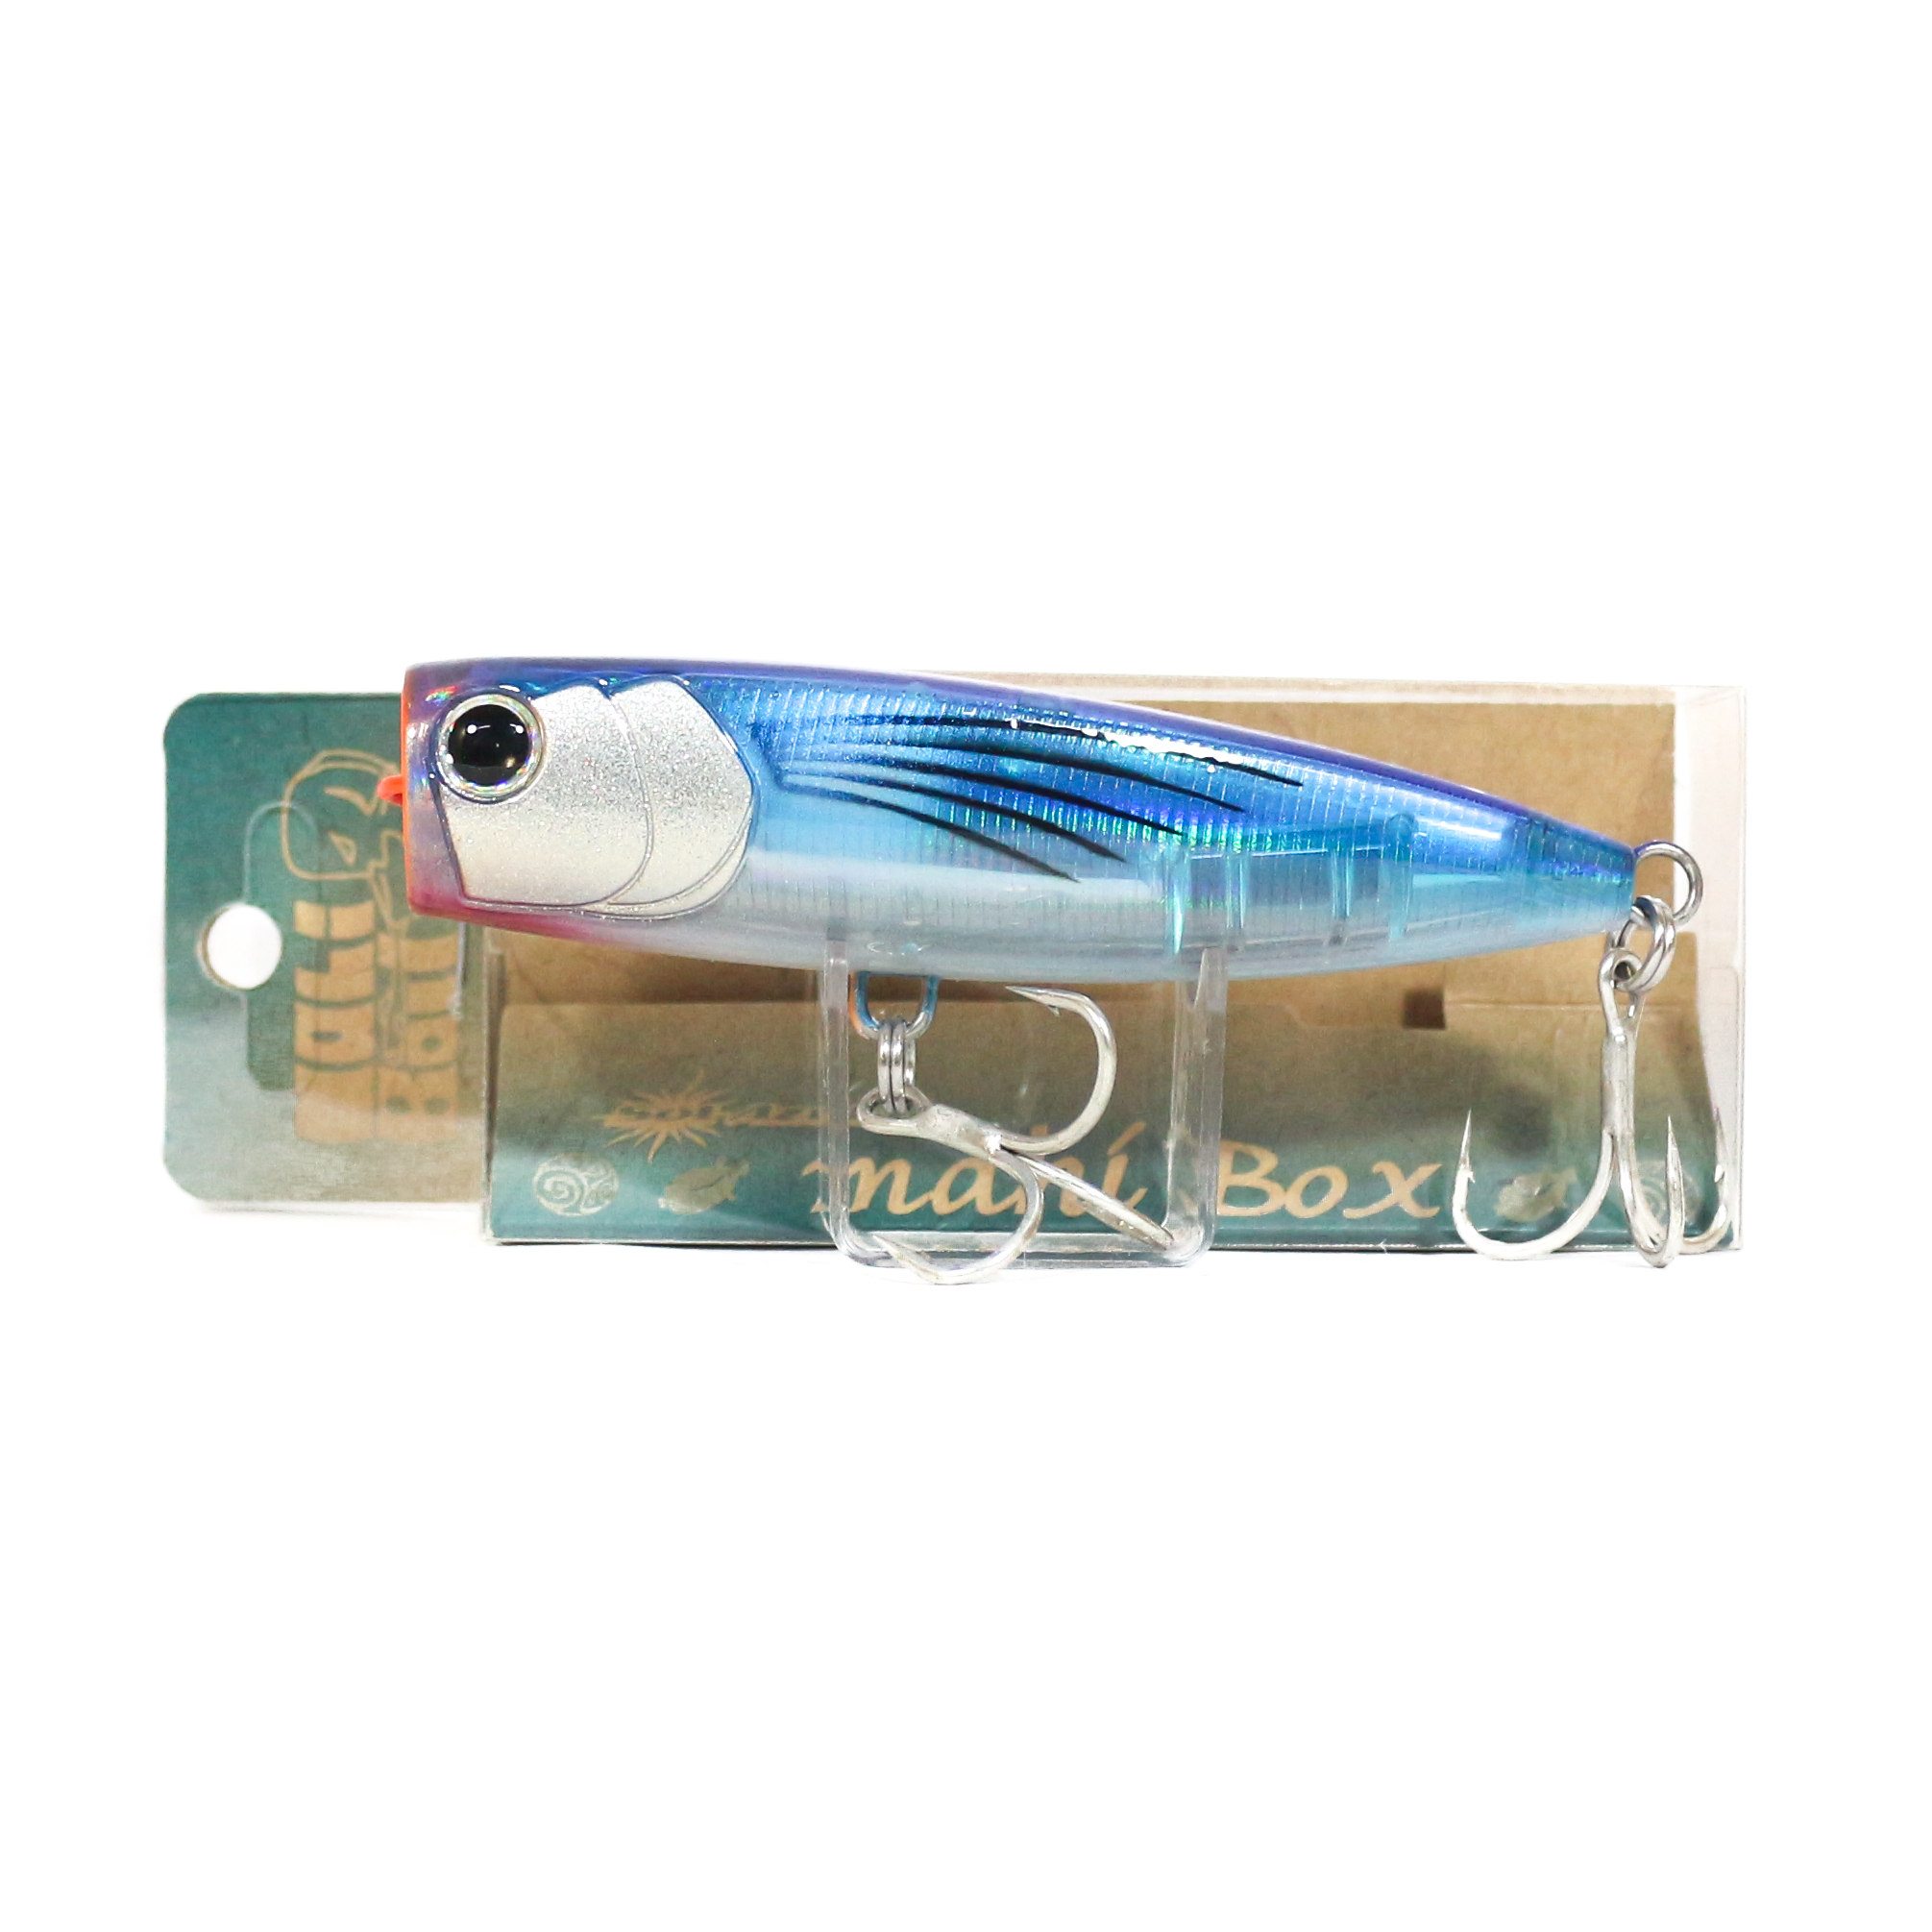 Mangrove Studio Mahi Box Popper 100 mm 28 grams Floating Lure IM-5 (1487)